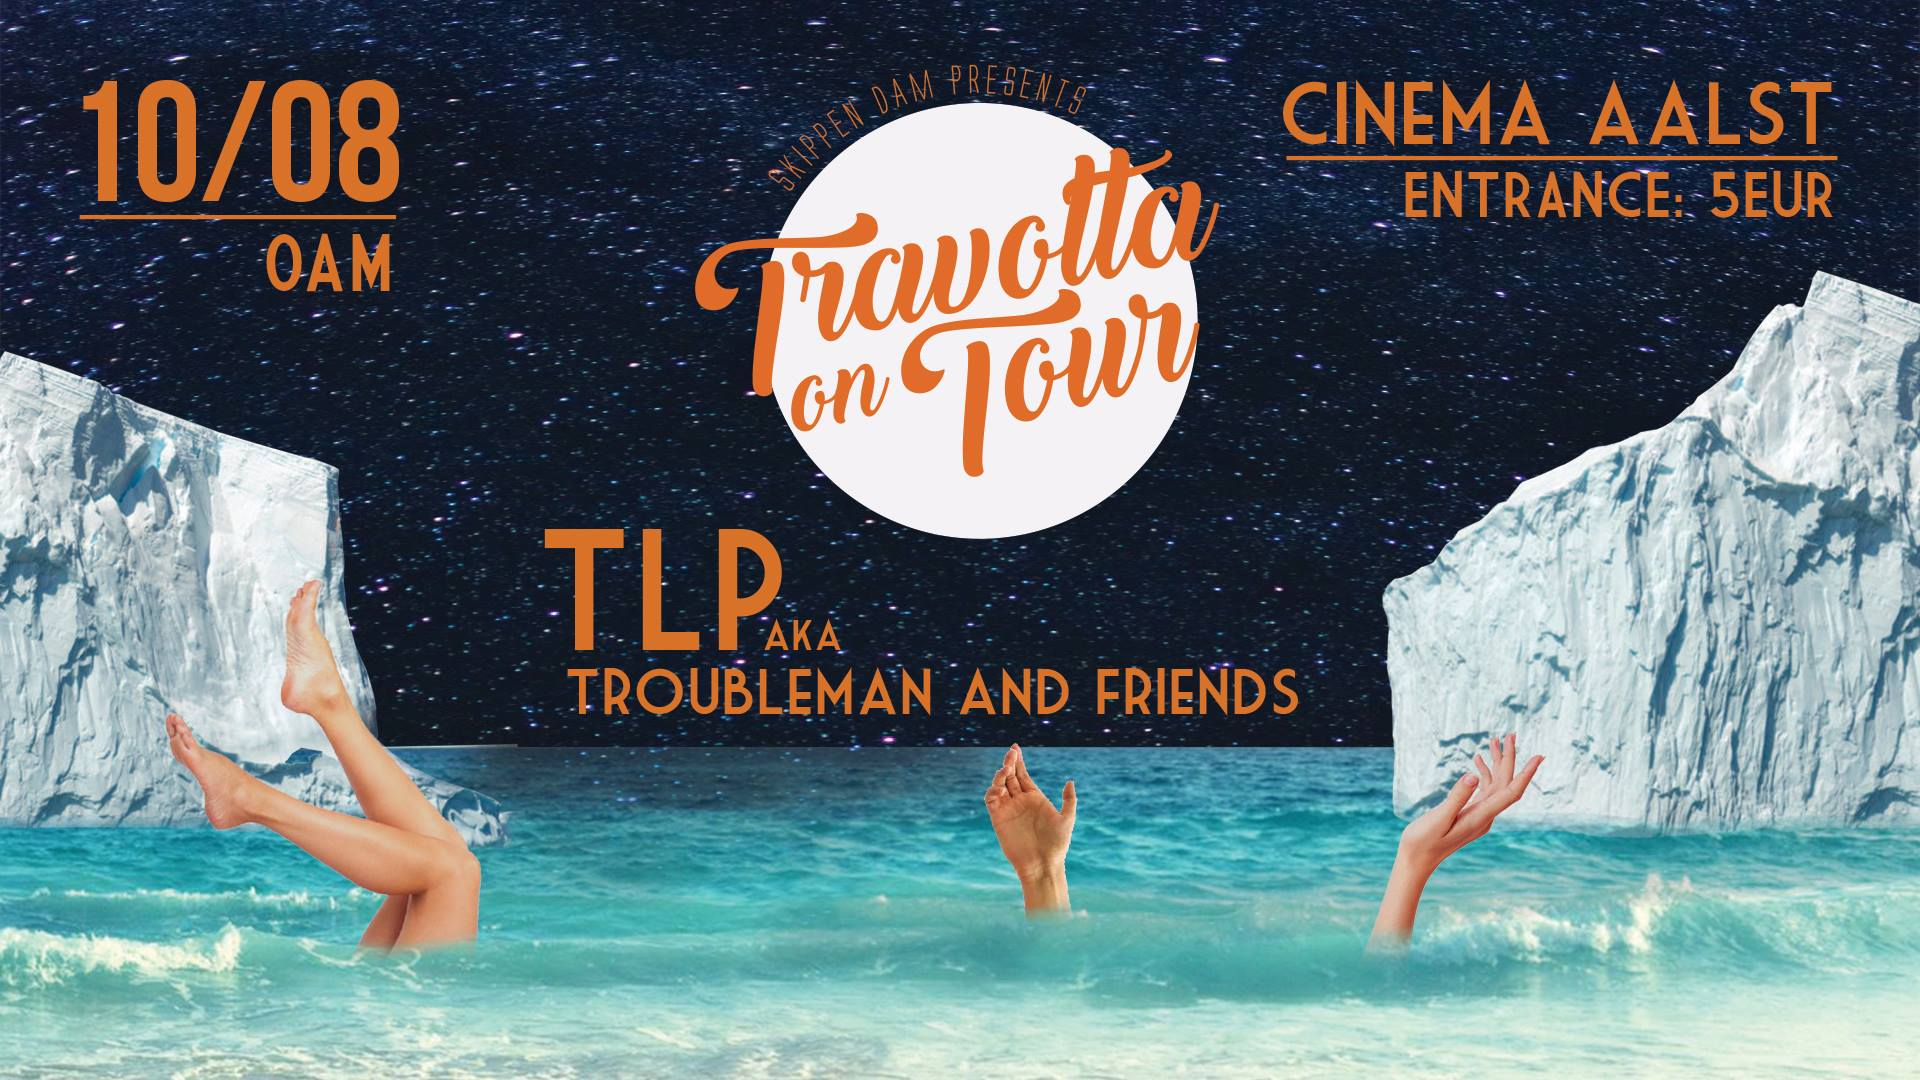 18 08 09 Skippen Dam Travolta on Tour TLP aka Troubleman FriendsCinema Vrijdag 10 augustus 2018